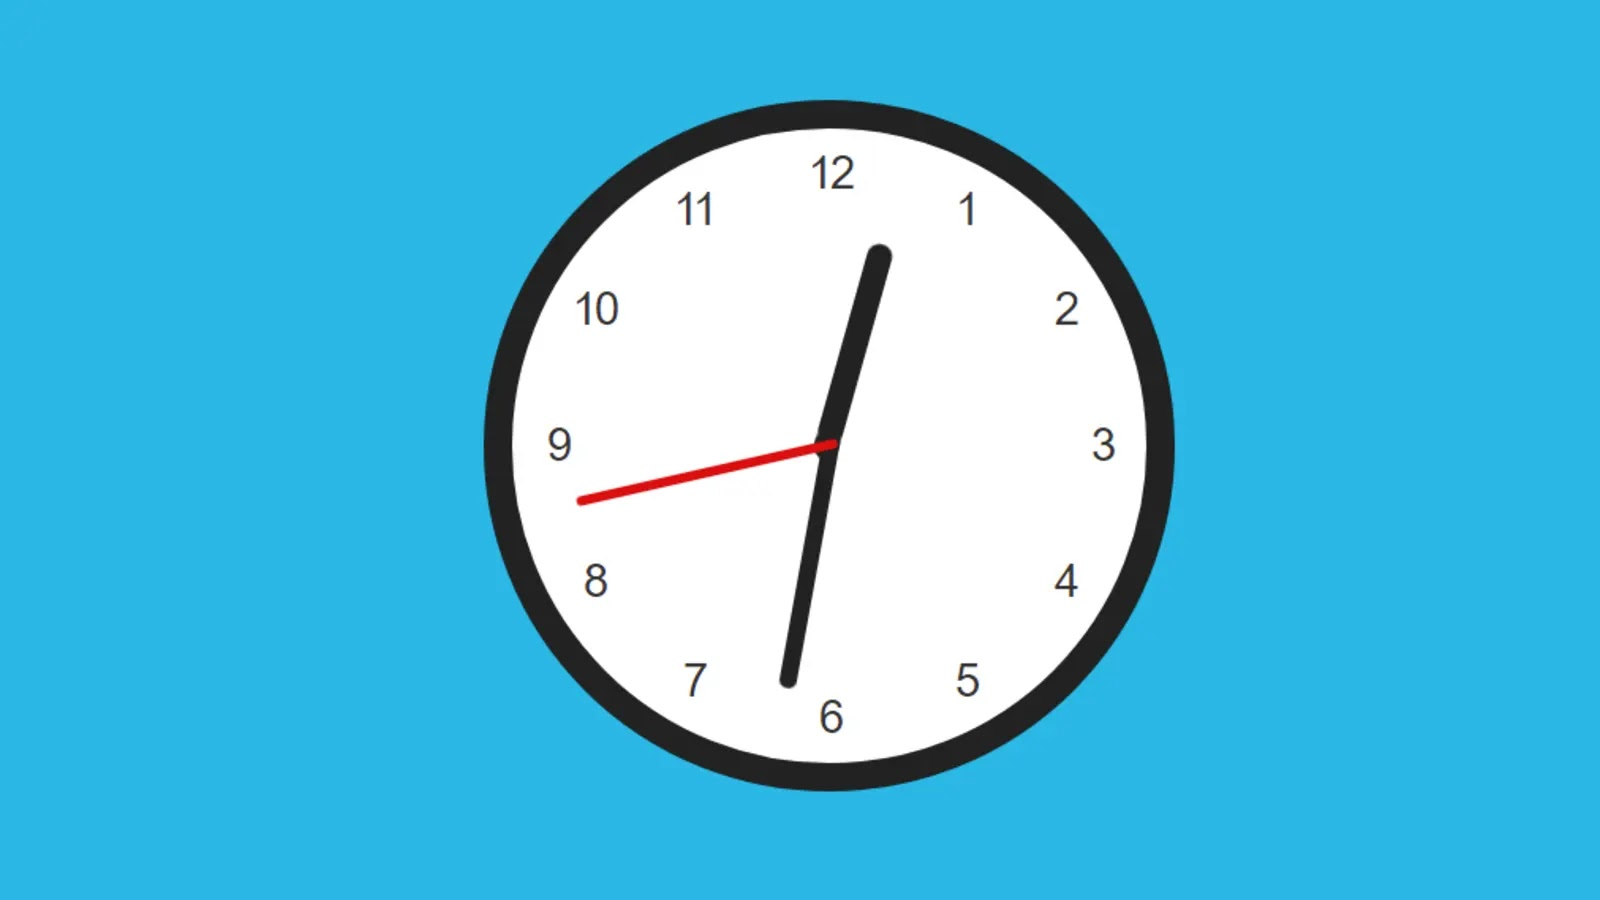 Determine the rotation of the hands-on the clock